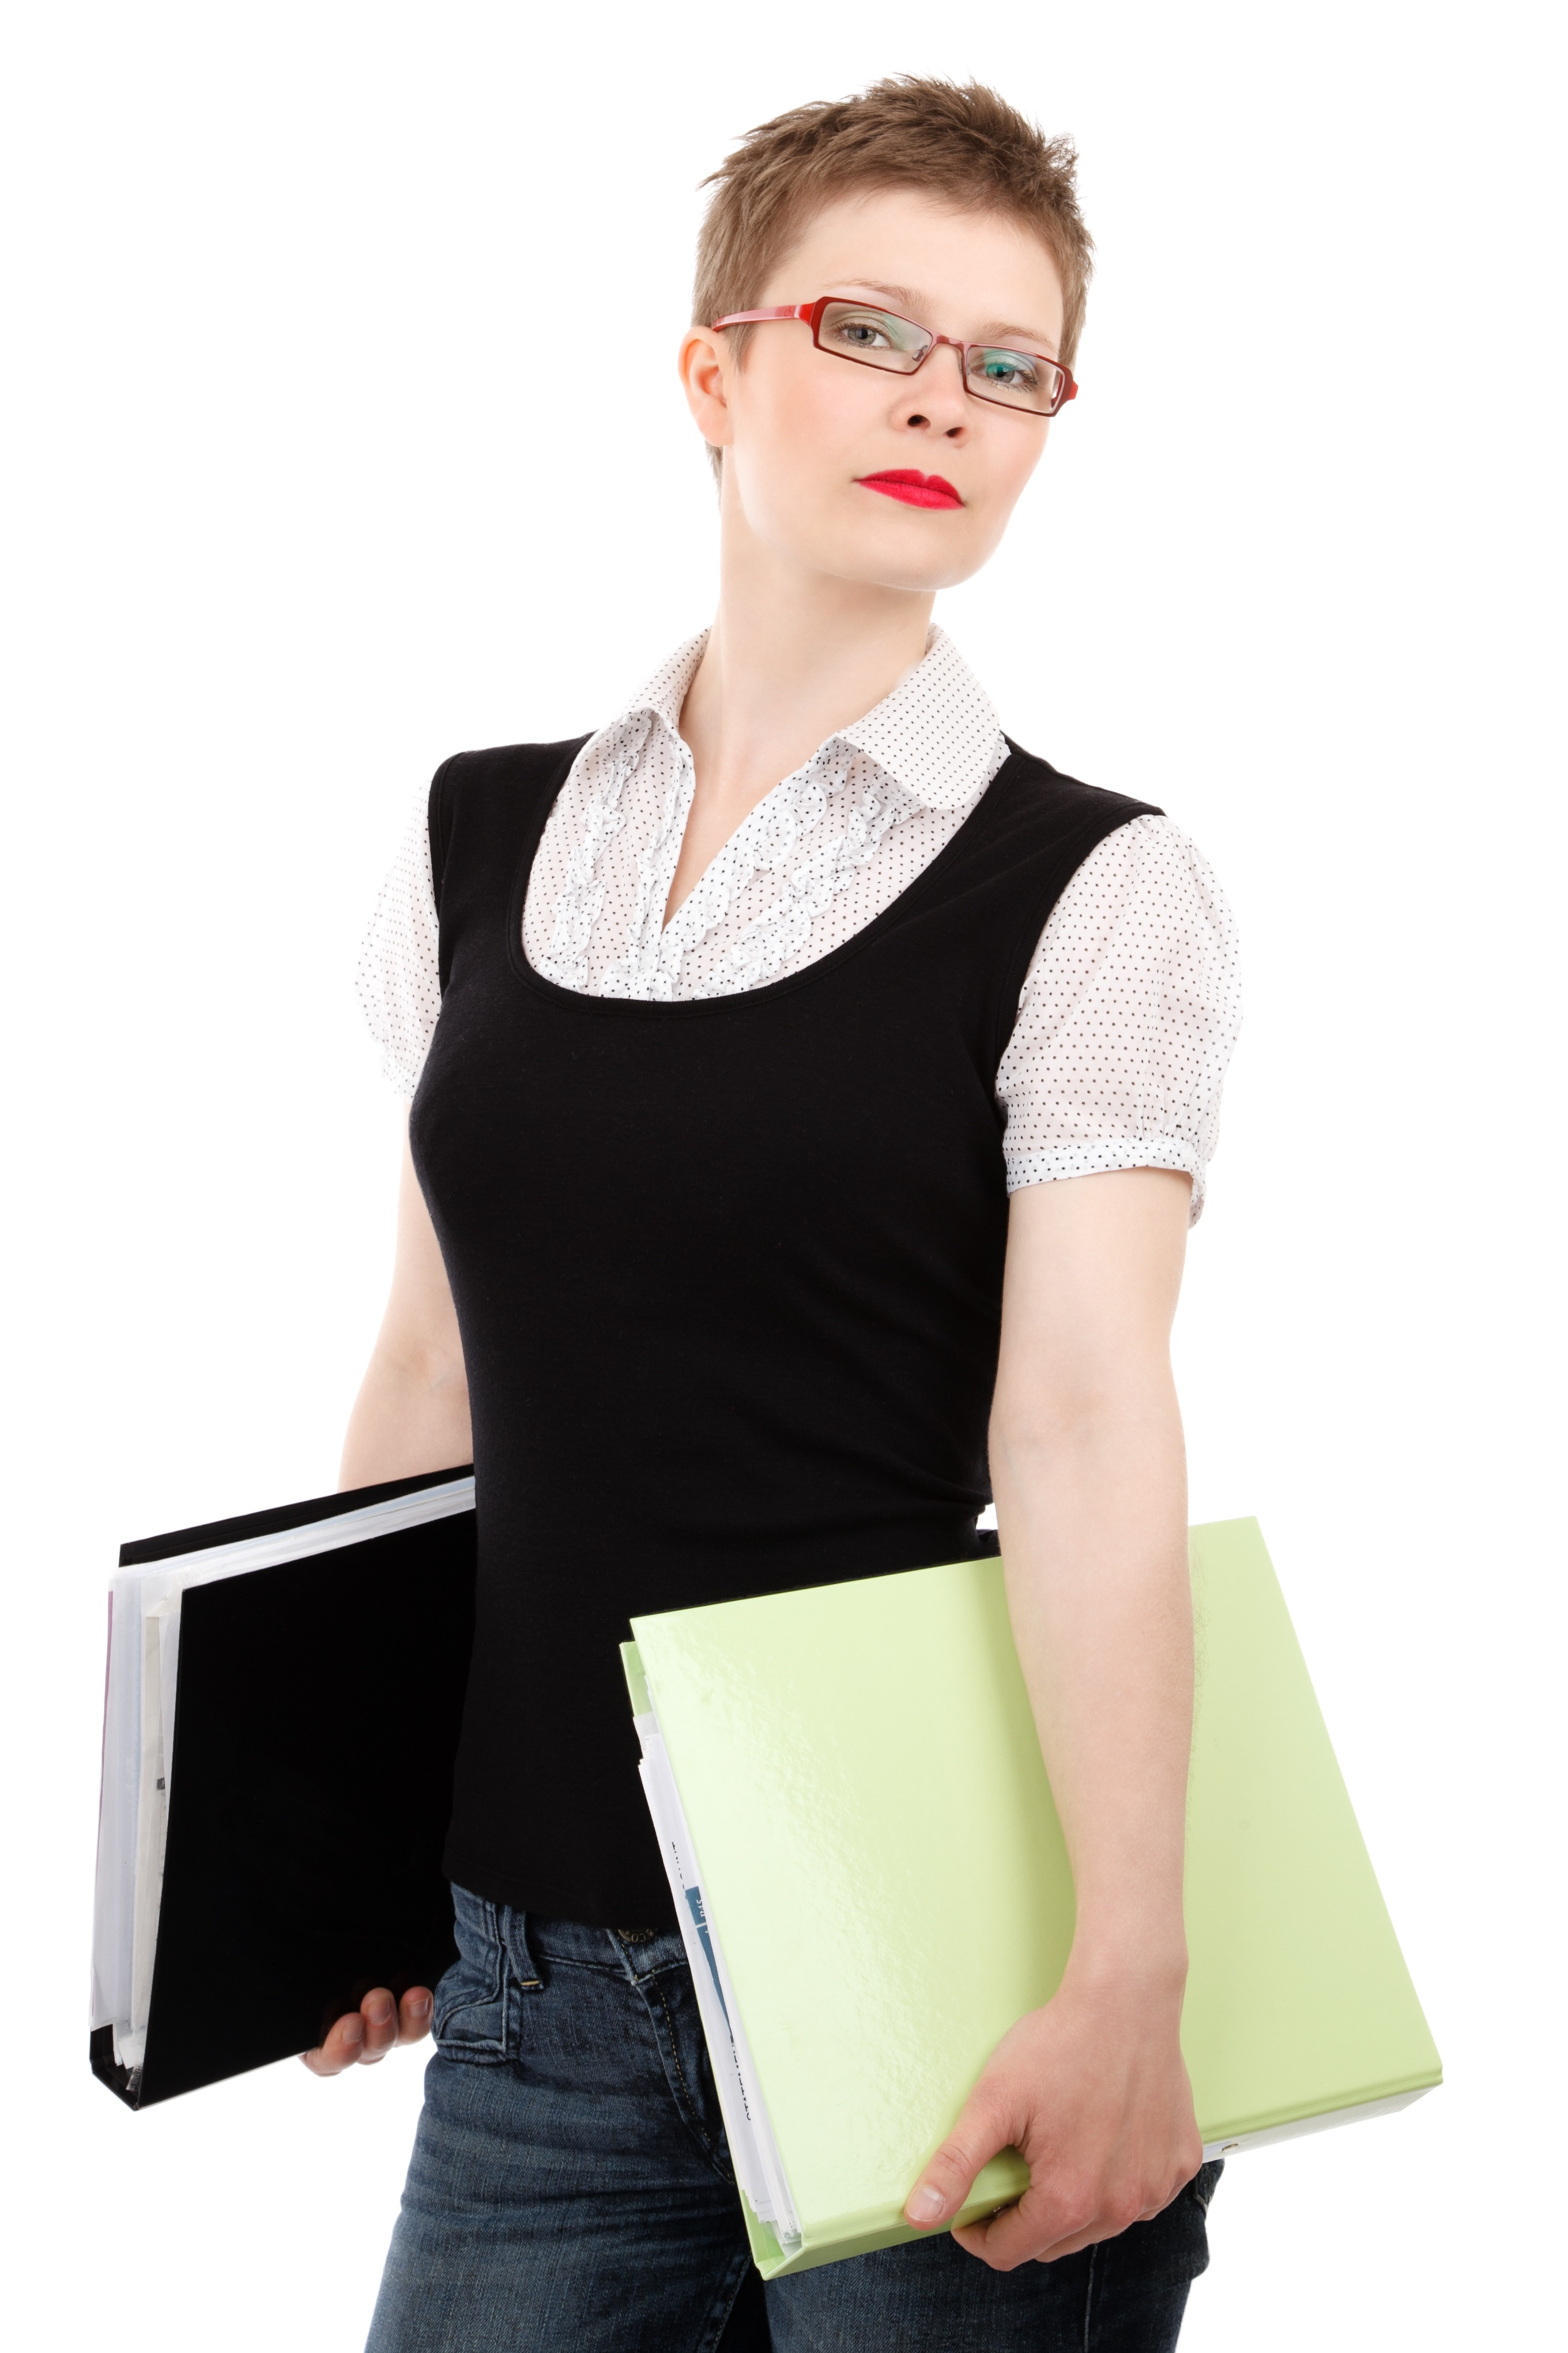 Woman In Black Scoop Neck Shirt Smiling Free Stock Photo